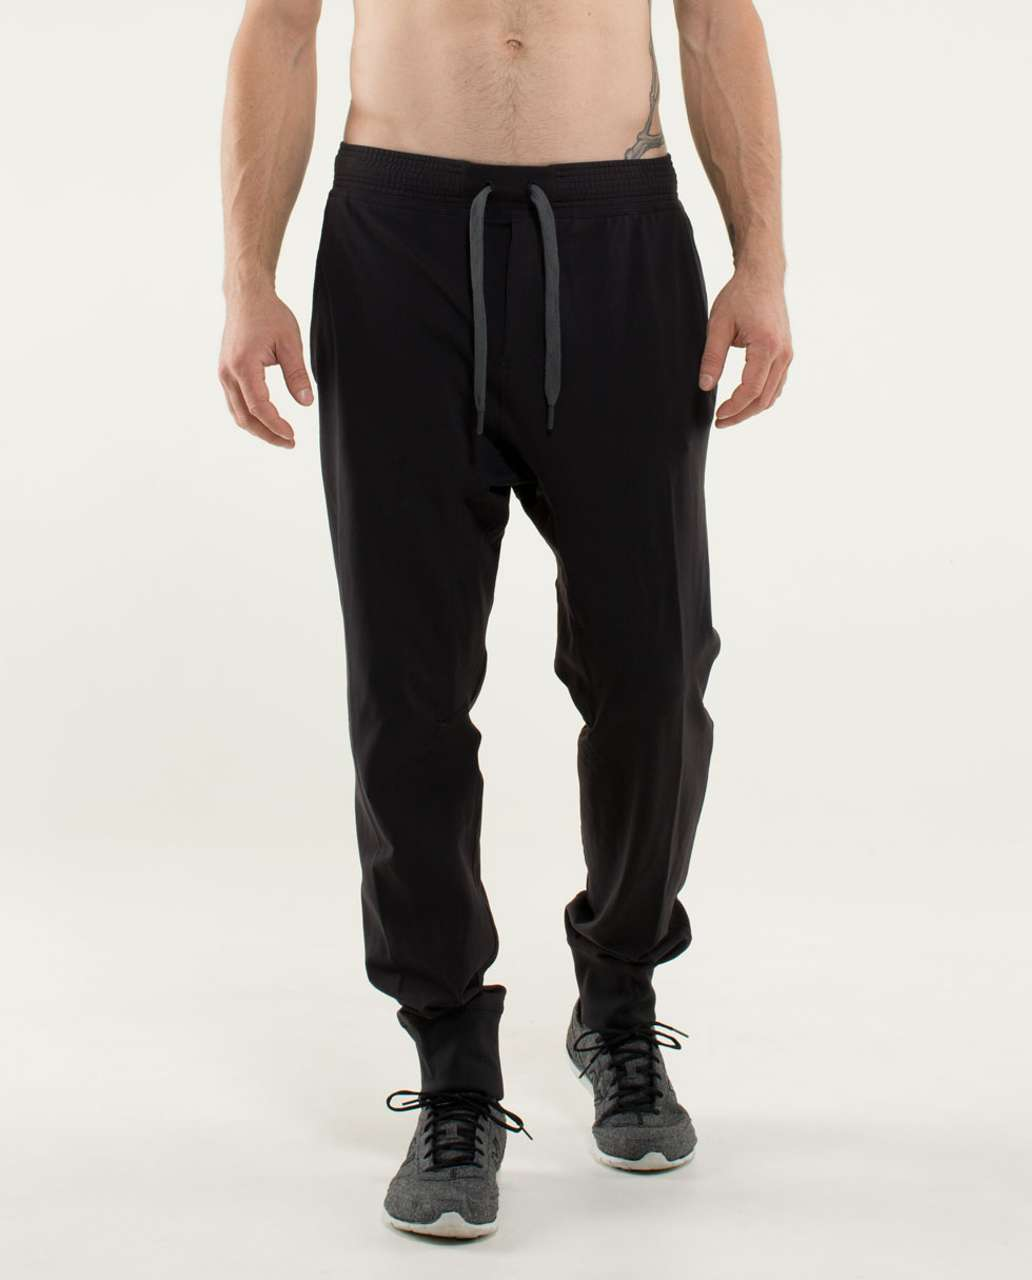 b03a7f06a6 Lululemon Anti-Gravity Pant - Black (First Release) - lulu fanatics